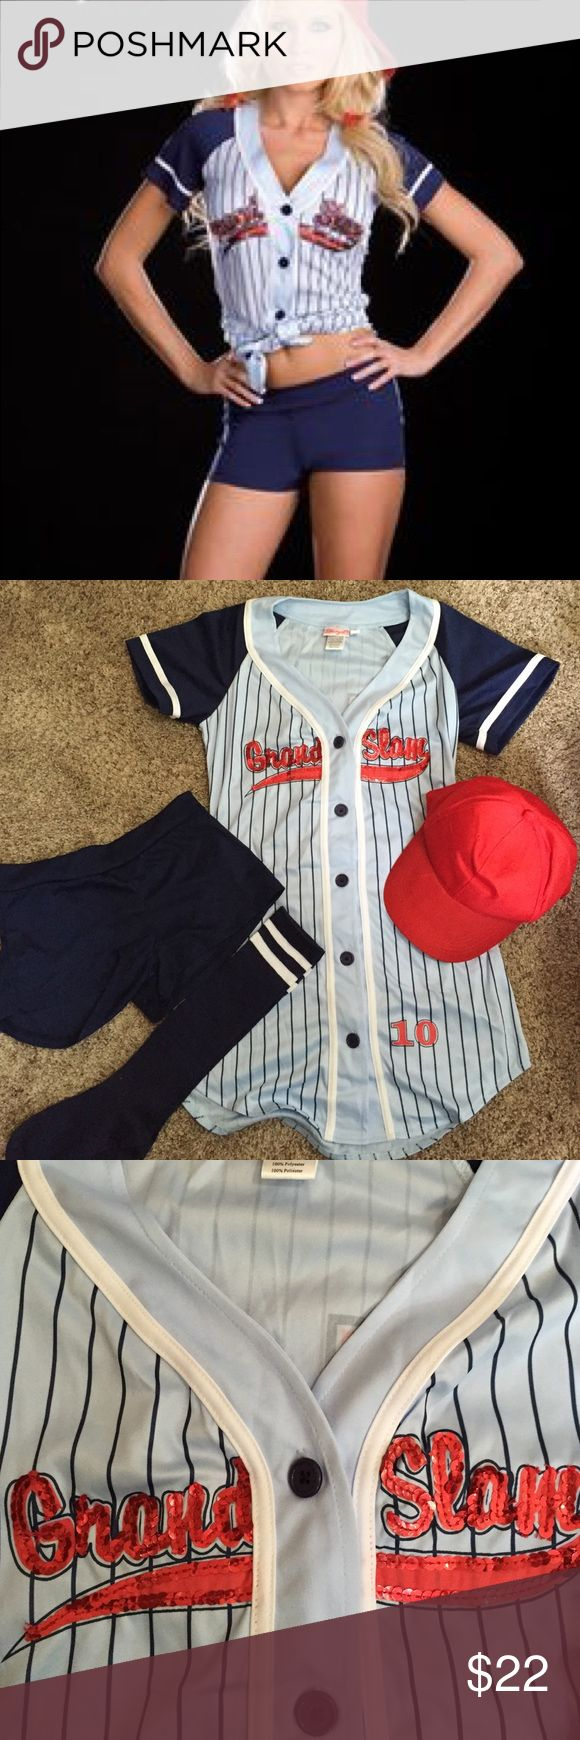 Baseball ⚾️ Halloween costume! •Super cute baseball costume •Comes with top, shorts, hat and knee high socks! •Excellent condition- NEVER worn! Other